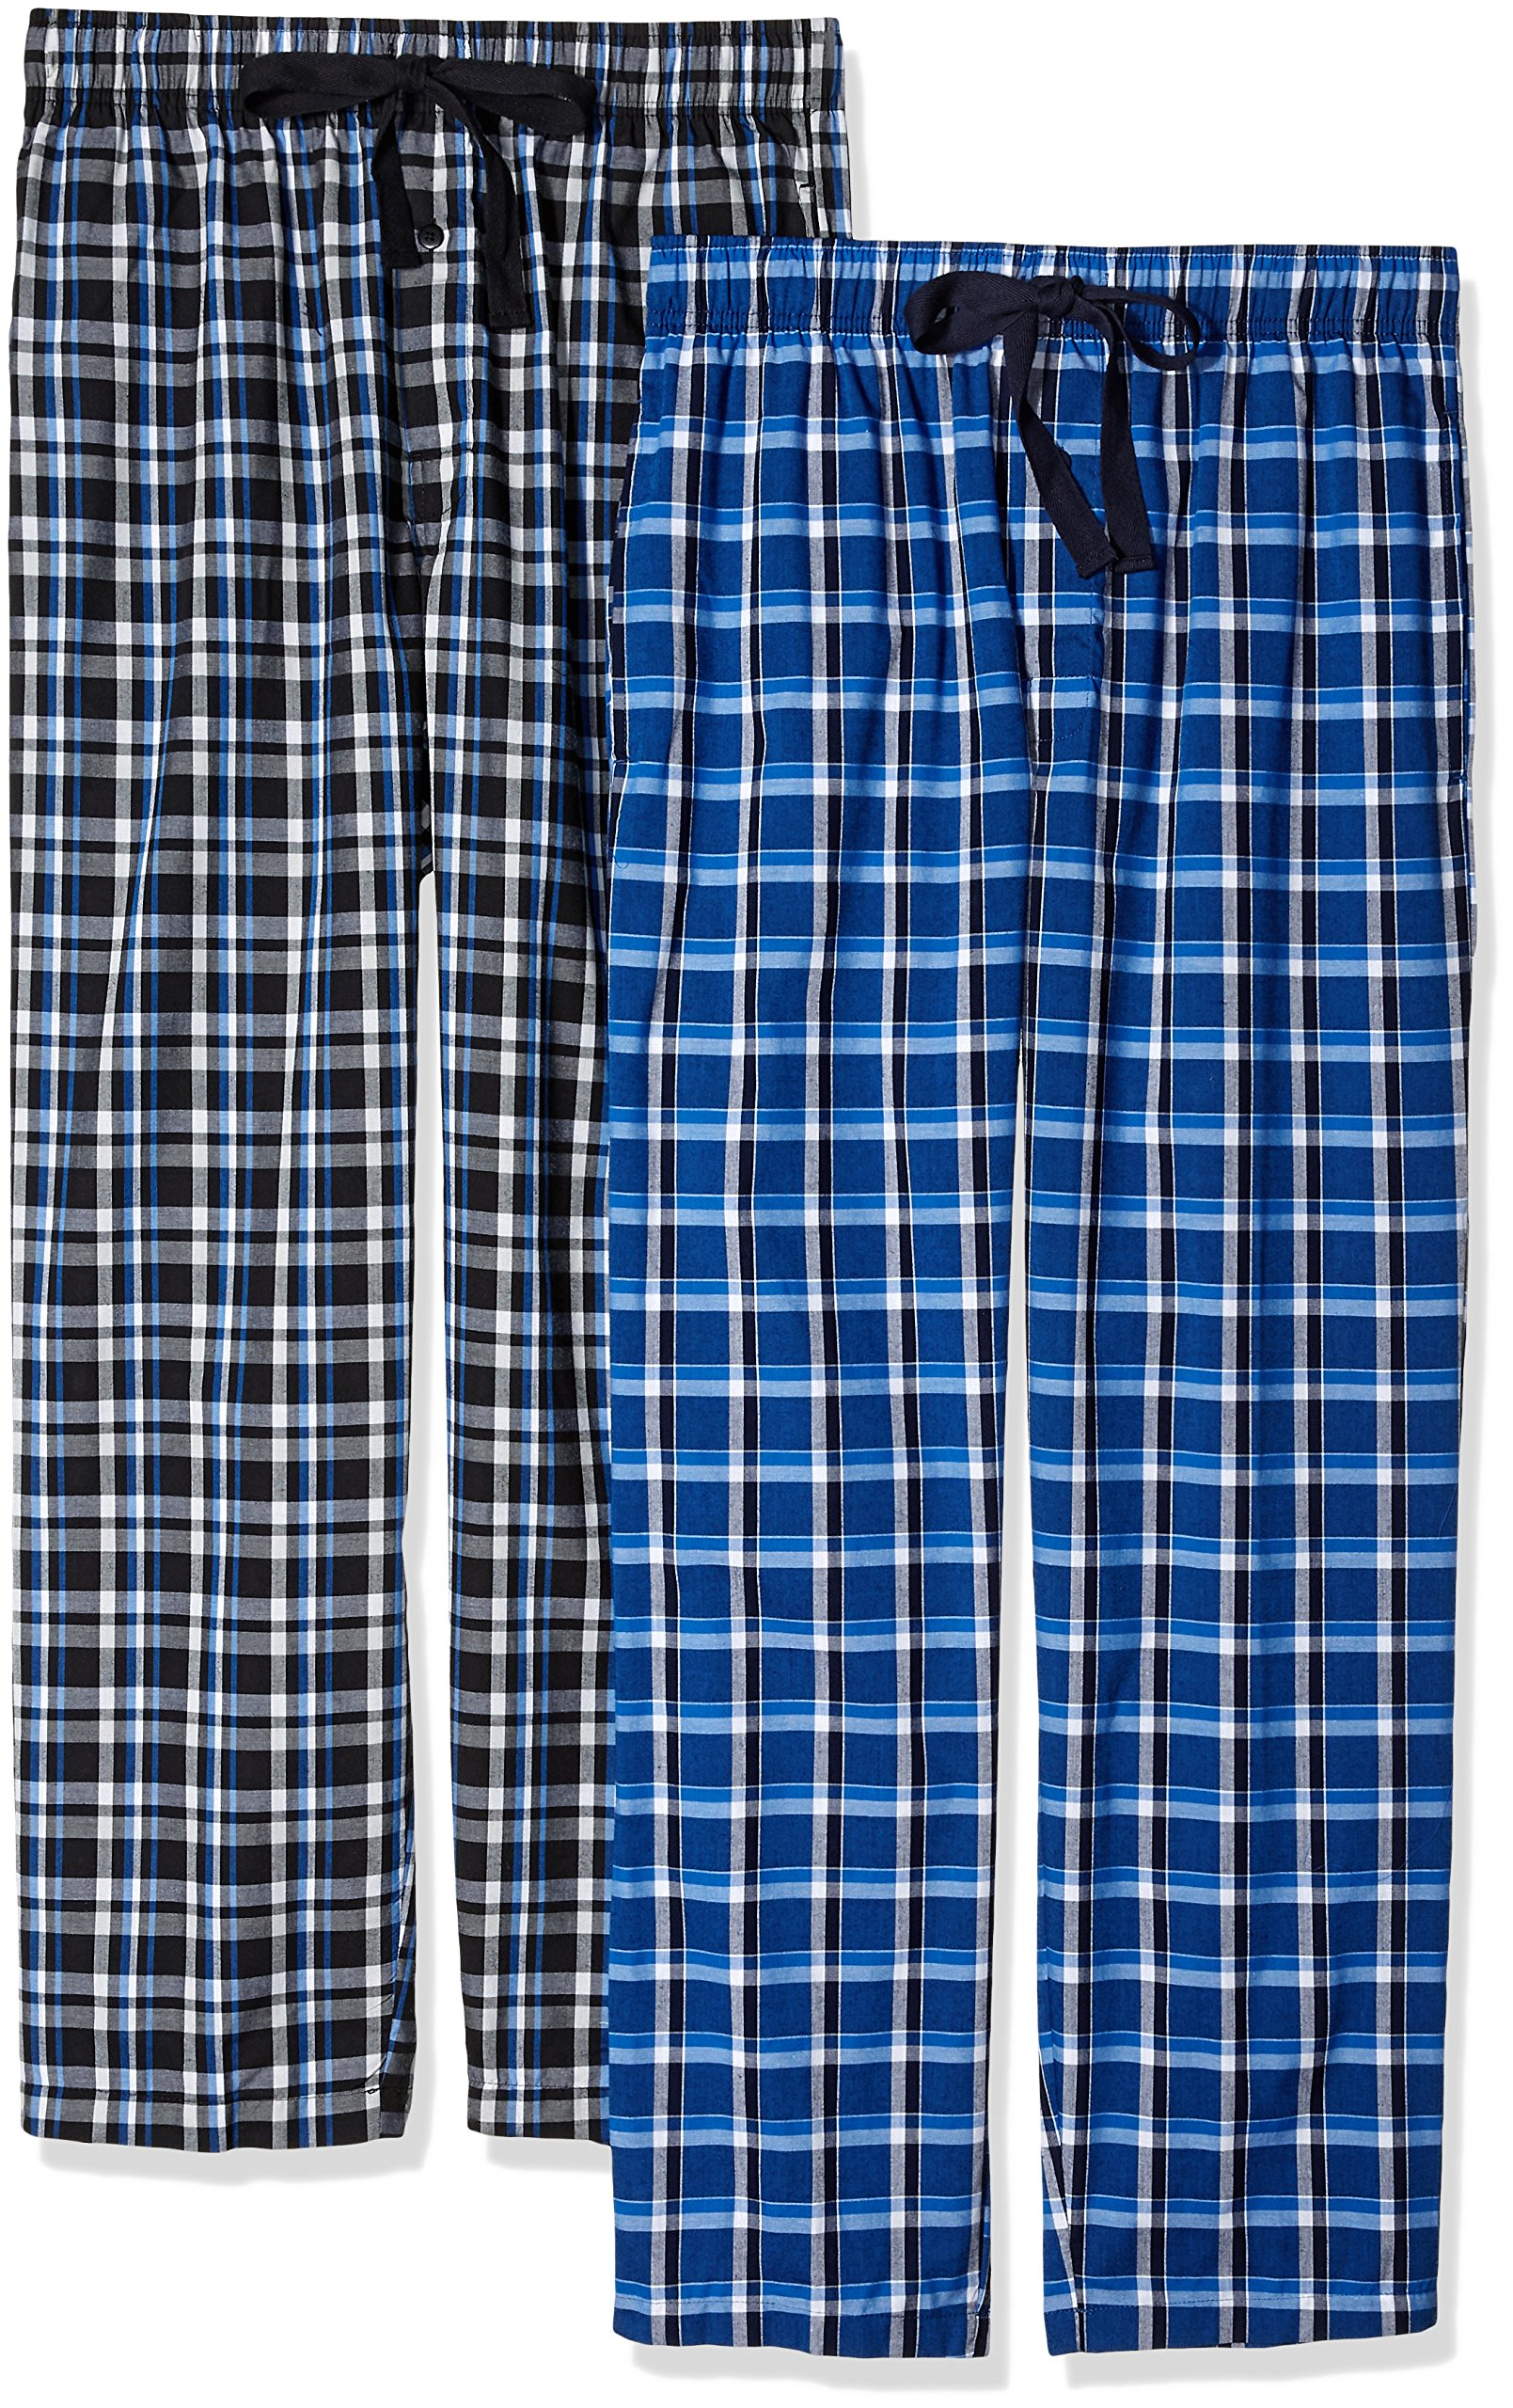 Fruit of the Loom Men's 2-Pack Woven Pajama Pant Set, Black/Navy, Small